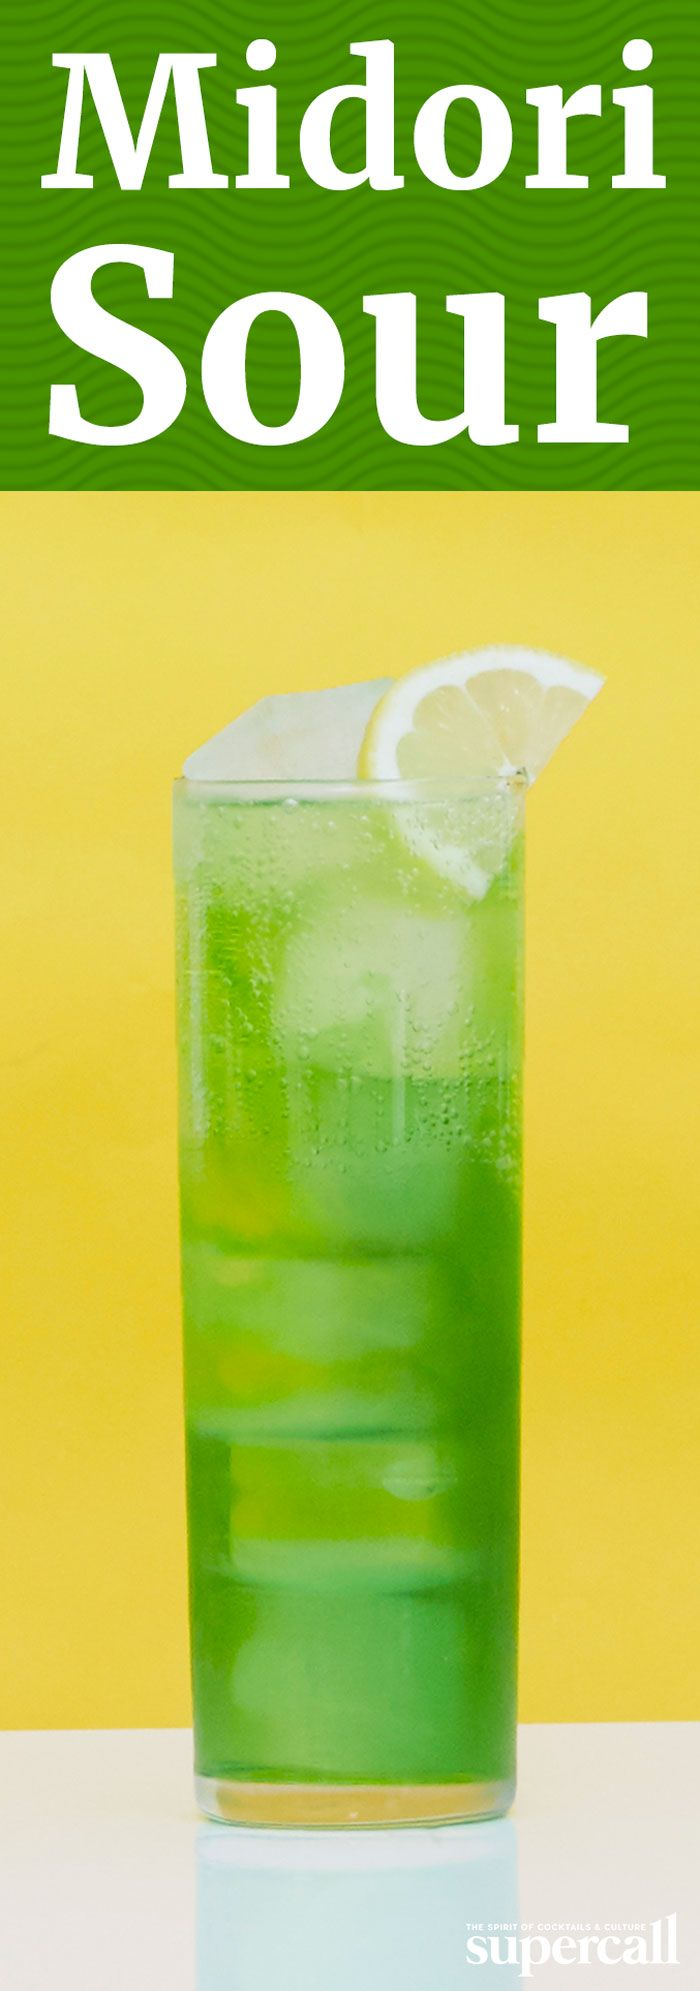 Made with neon green Midori (a Japanese liqueur flavored with muskmelon—a honeydew-esque fruit), vodka, citrus juices and soda water, it's as fun to look at as it is to sip.  INGREDIENTS 1OZMIDORI 1OZVODKA 0.5OZLEMON JUICE 0.5OZLIME JUICE SODA WATER MARASCHINO CHERRY